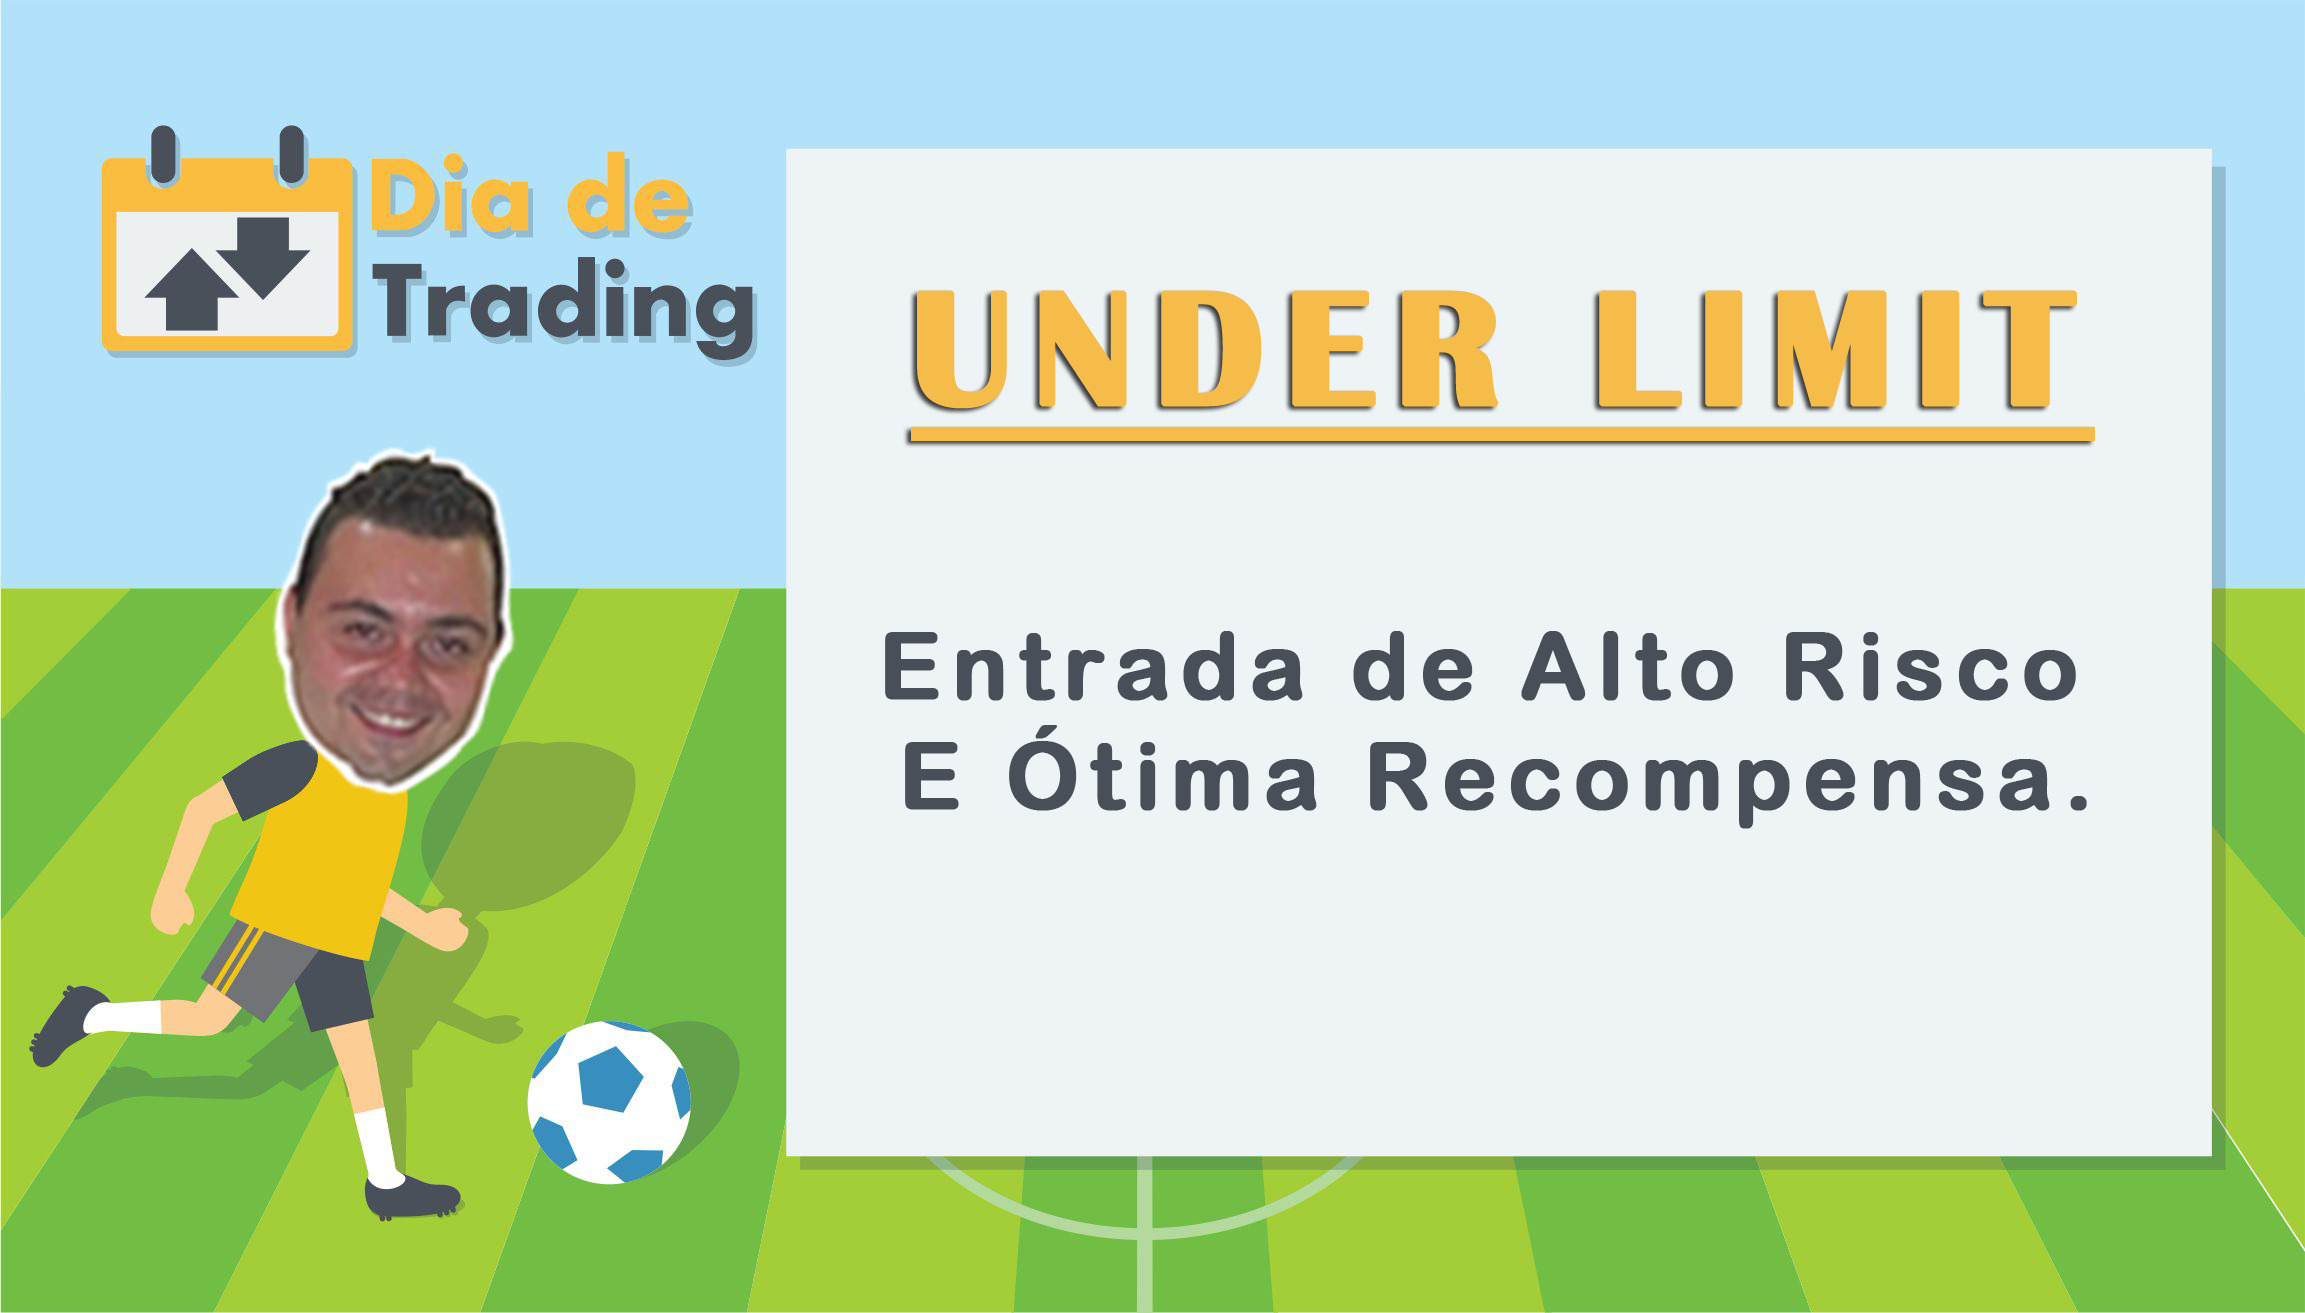 Under Limit – Entrada de Alto Risco E Ótima Recompensa